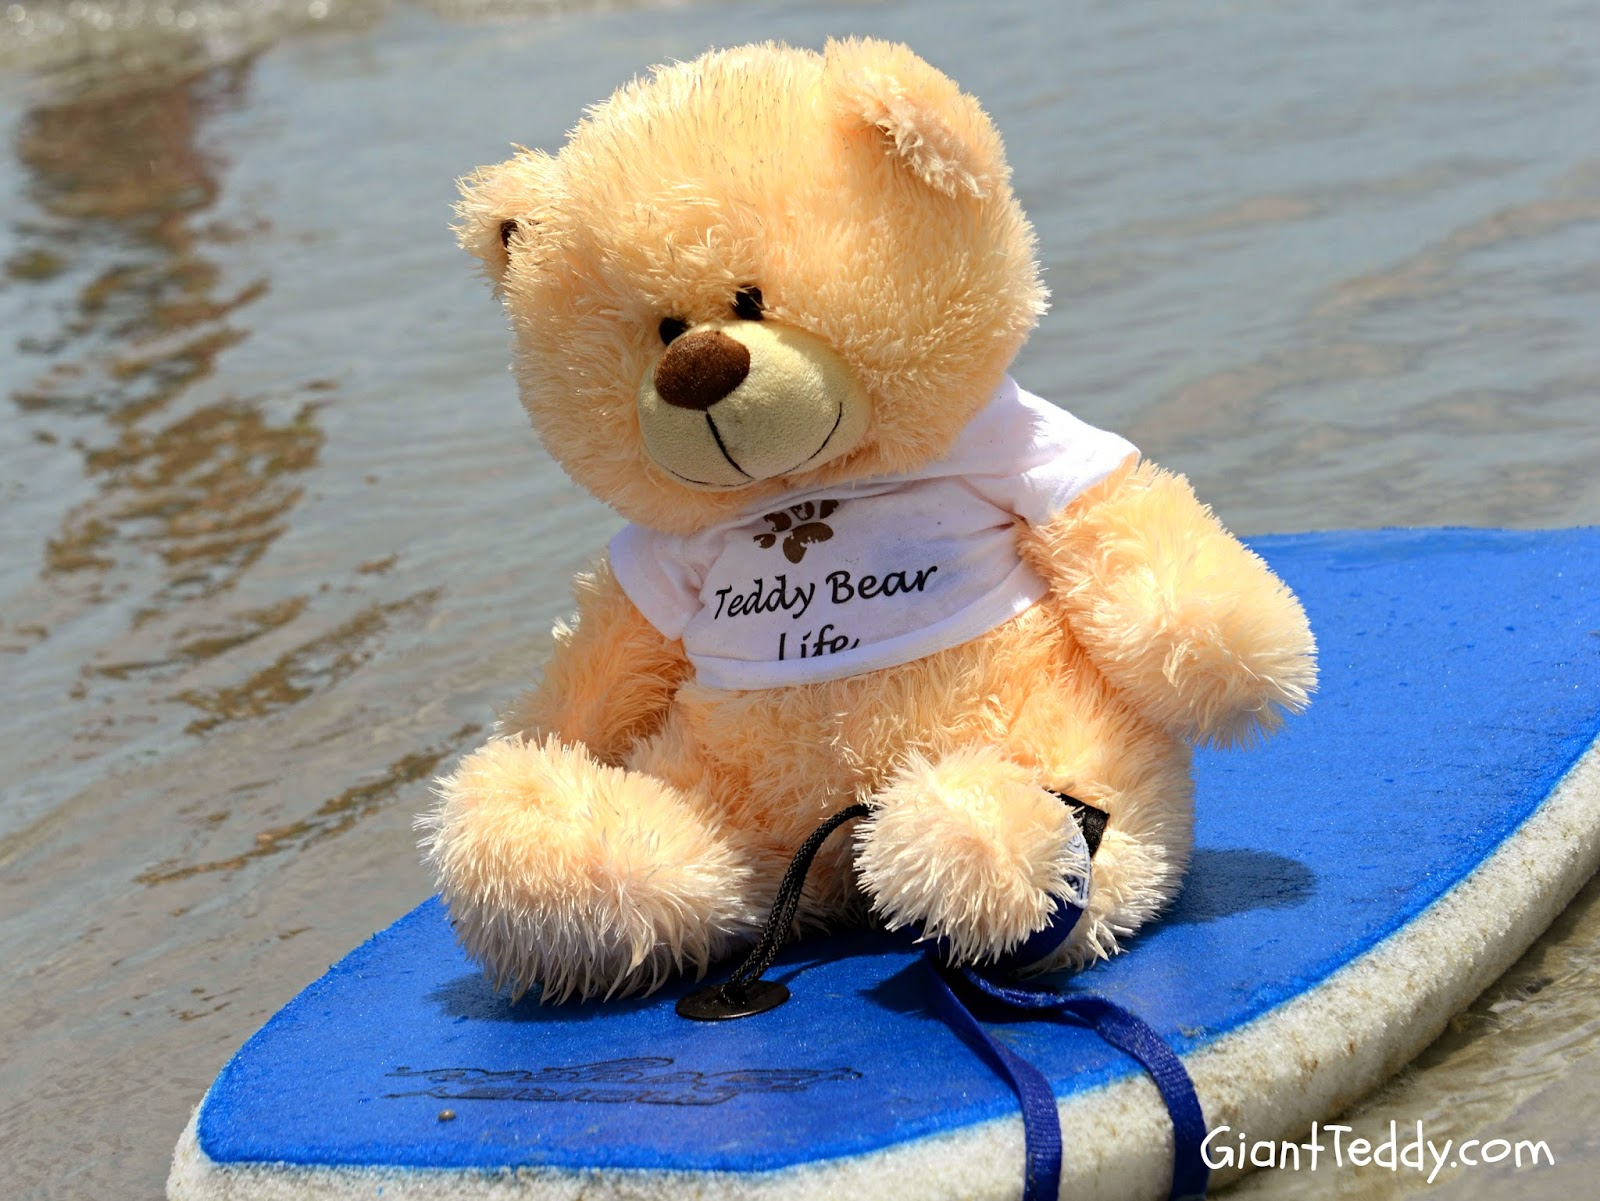 adorable teddy bears don't usually boogie board